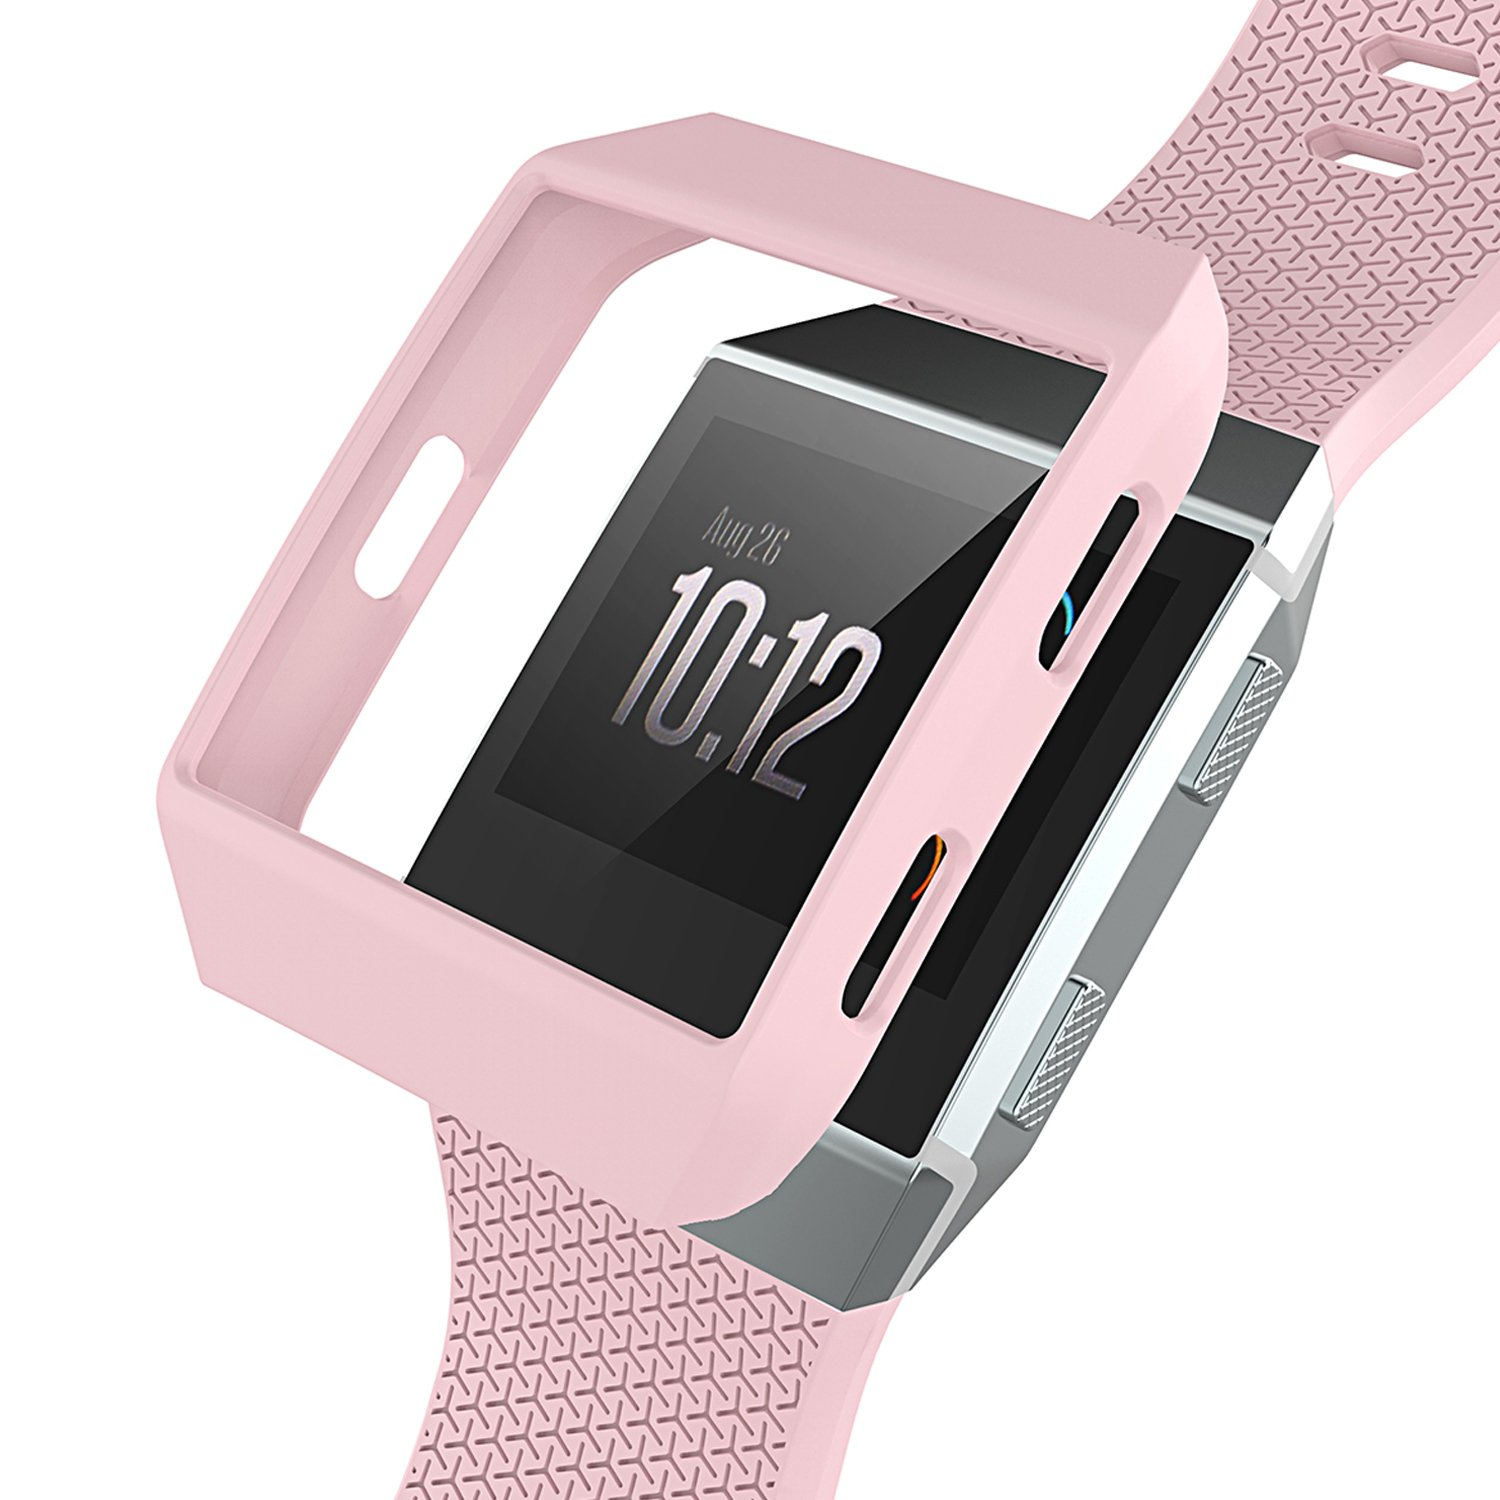 Fitbit Ionic Case Replacement Accessories Slim Rugged Cover Shock Proof Frame Protector for Fitbit Ionic Smartwatch Light Pink